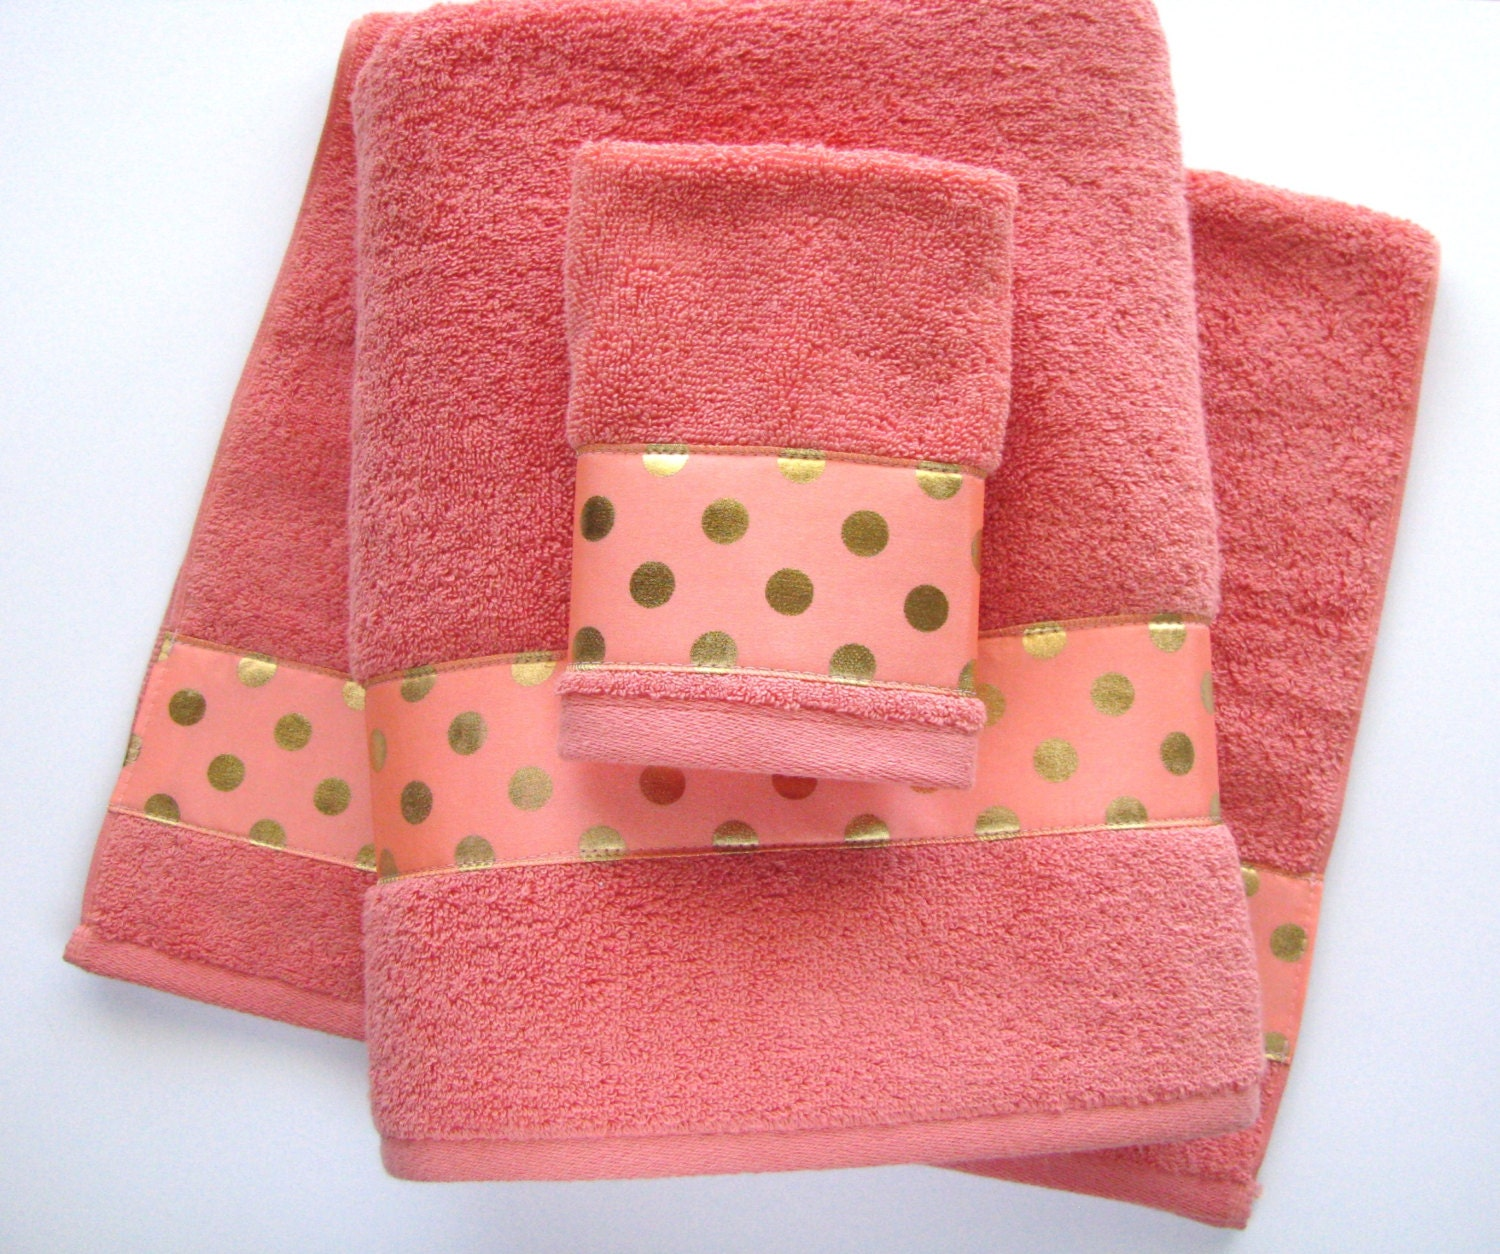 Hand Towels Bathroom: Coral Gold Towels Hand Towels Bath Towels Custom By AugustAve